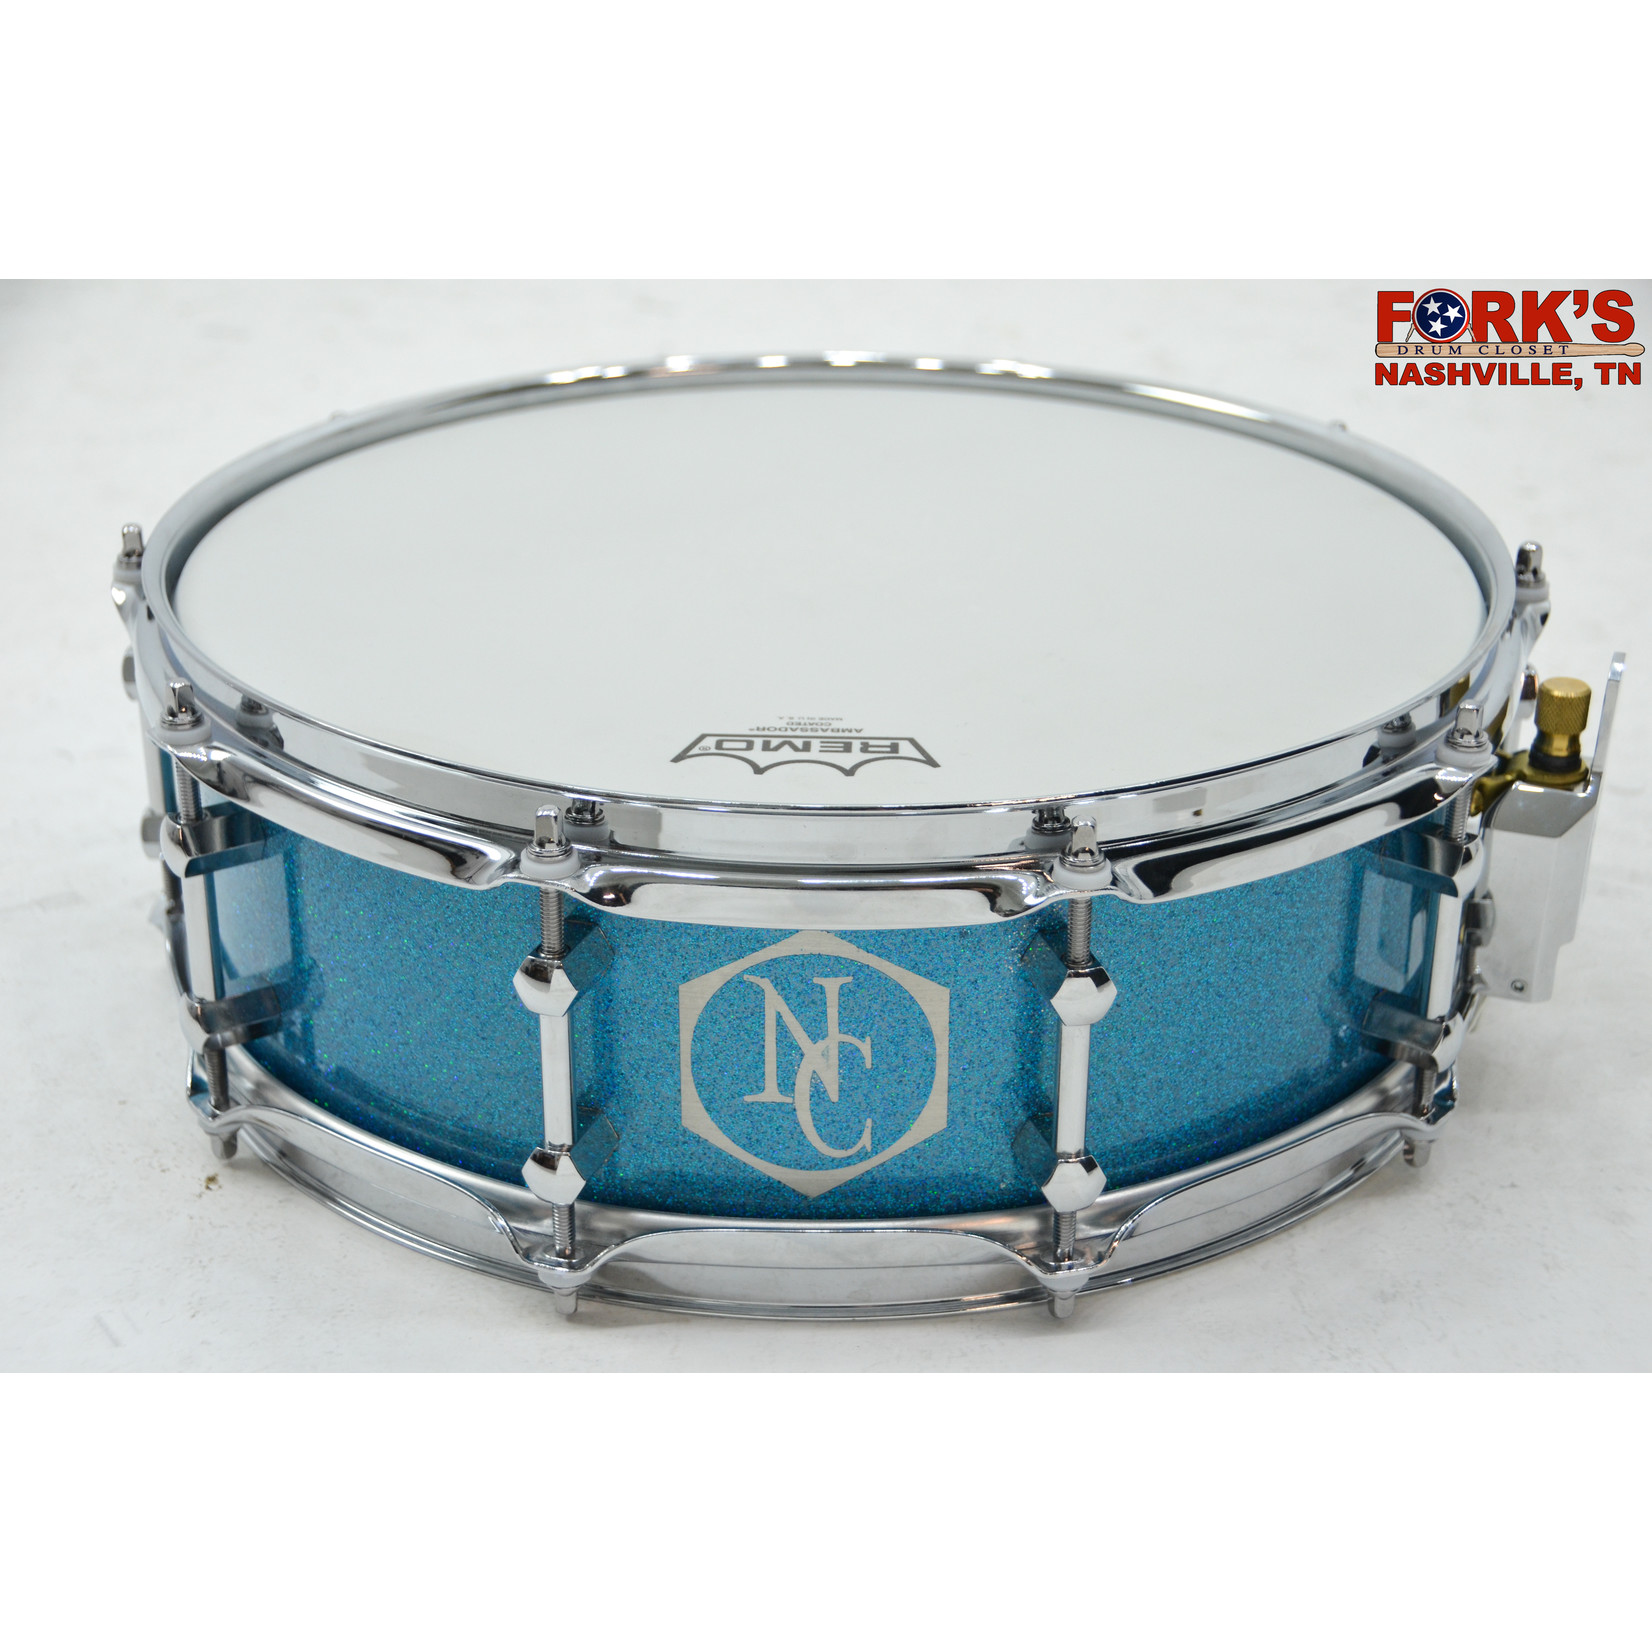 """Noble and Cooley Noble & Cooley Alloy Classic 4.75x14 Cast Aluminum  Snare Drum """"Cairo Blue Sparkle"""""""